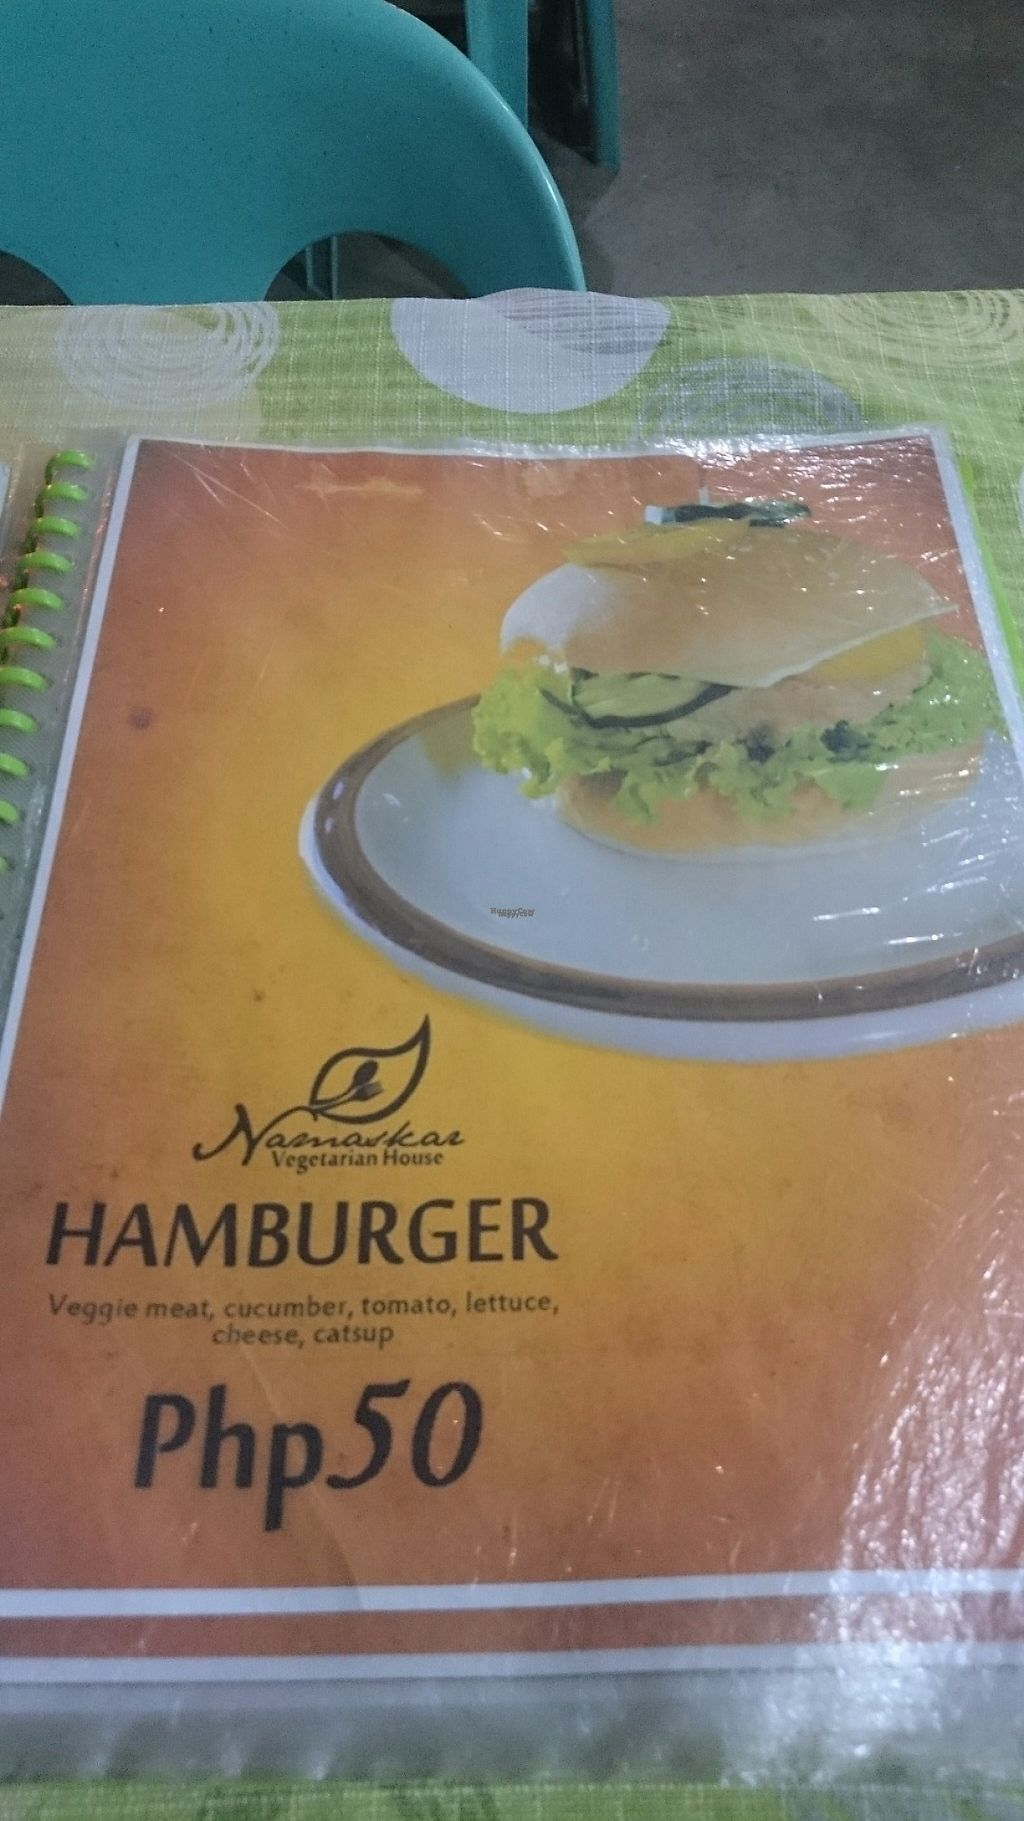 """Photo of Namaskar Vegetarian Restaurant  by <a href=""""/members/profile/peas-full"""">peas-full</a> <br/>Cheap <br/> December 12, 2016  - <a href='/contact/abuse/image/16638/200212'>Report</a>"""